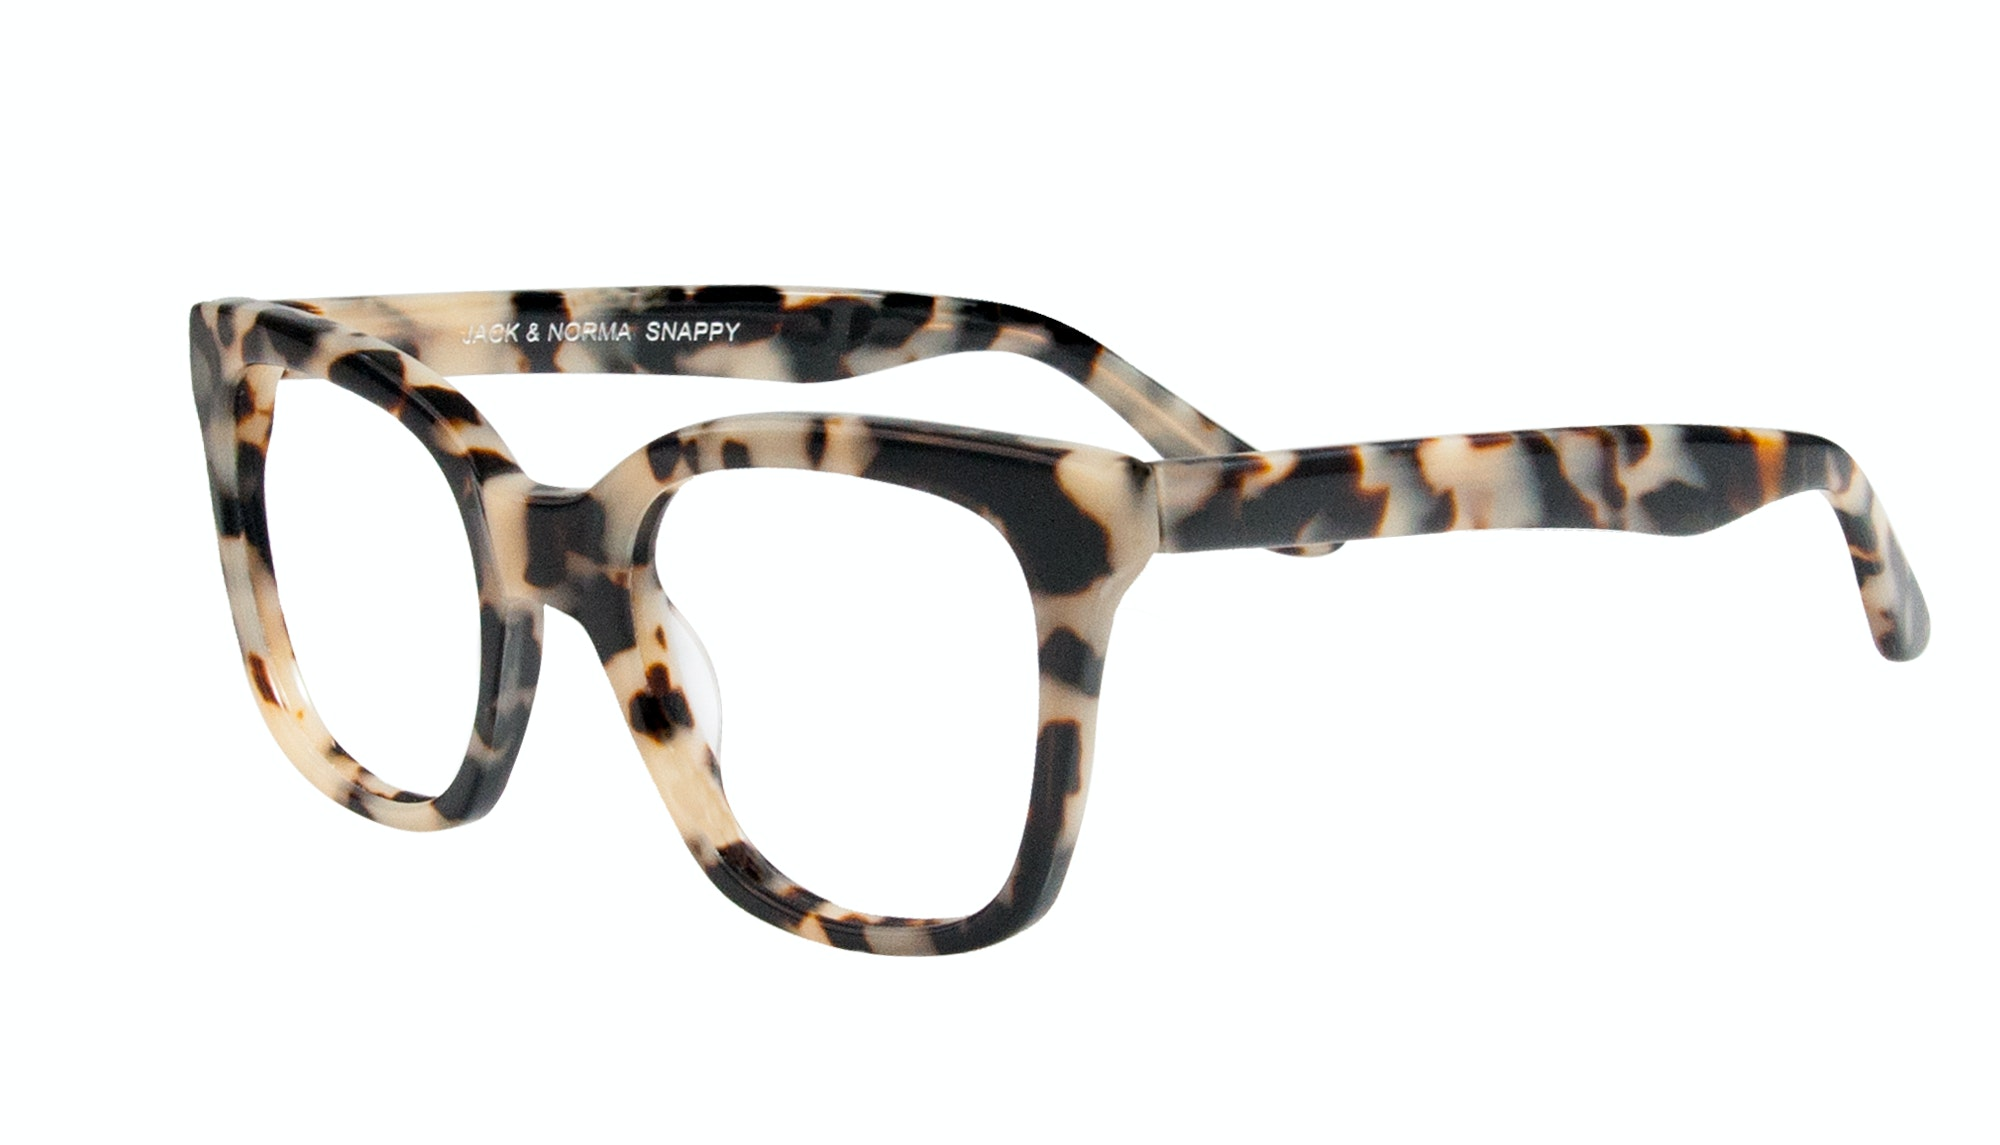 Affordable Fashion Glasses Rectangle Square Eyeglasses Women Jack & Norma Snappy Tilt